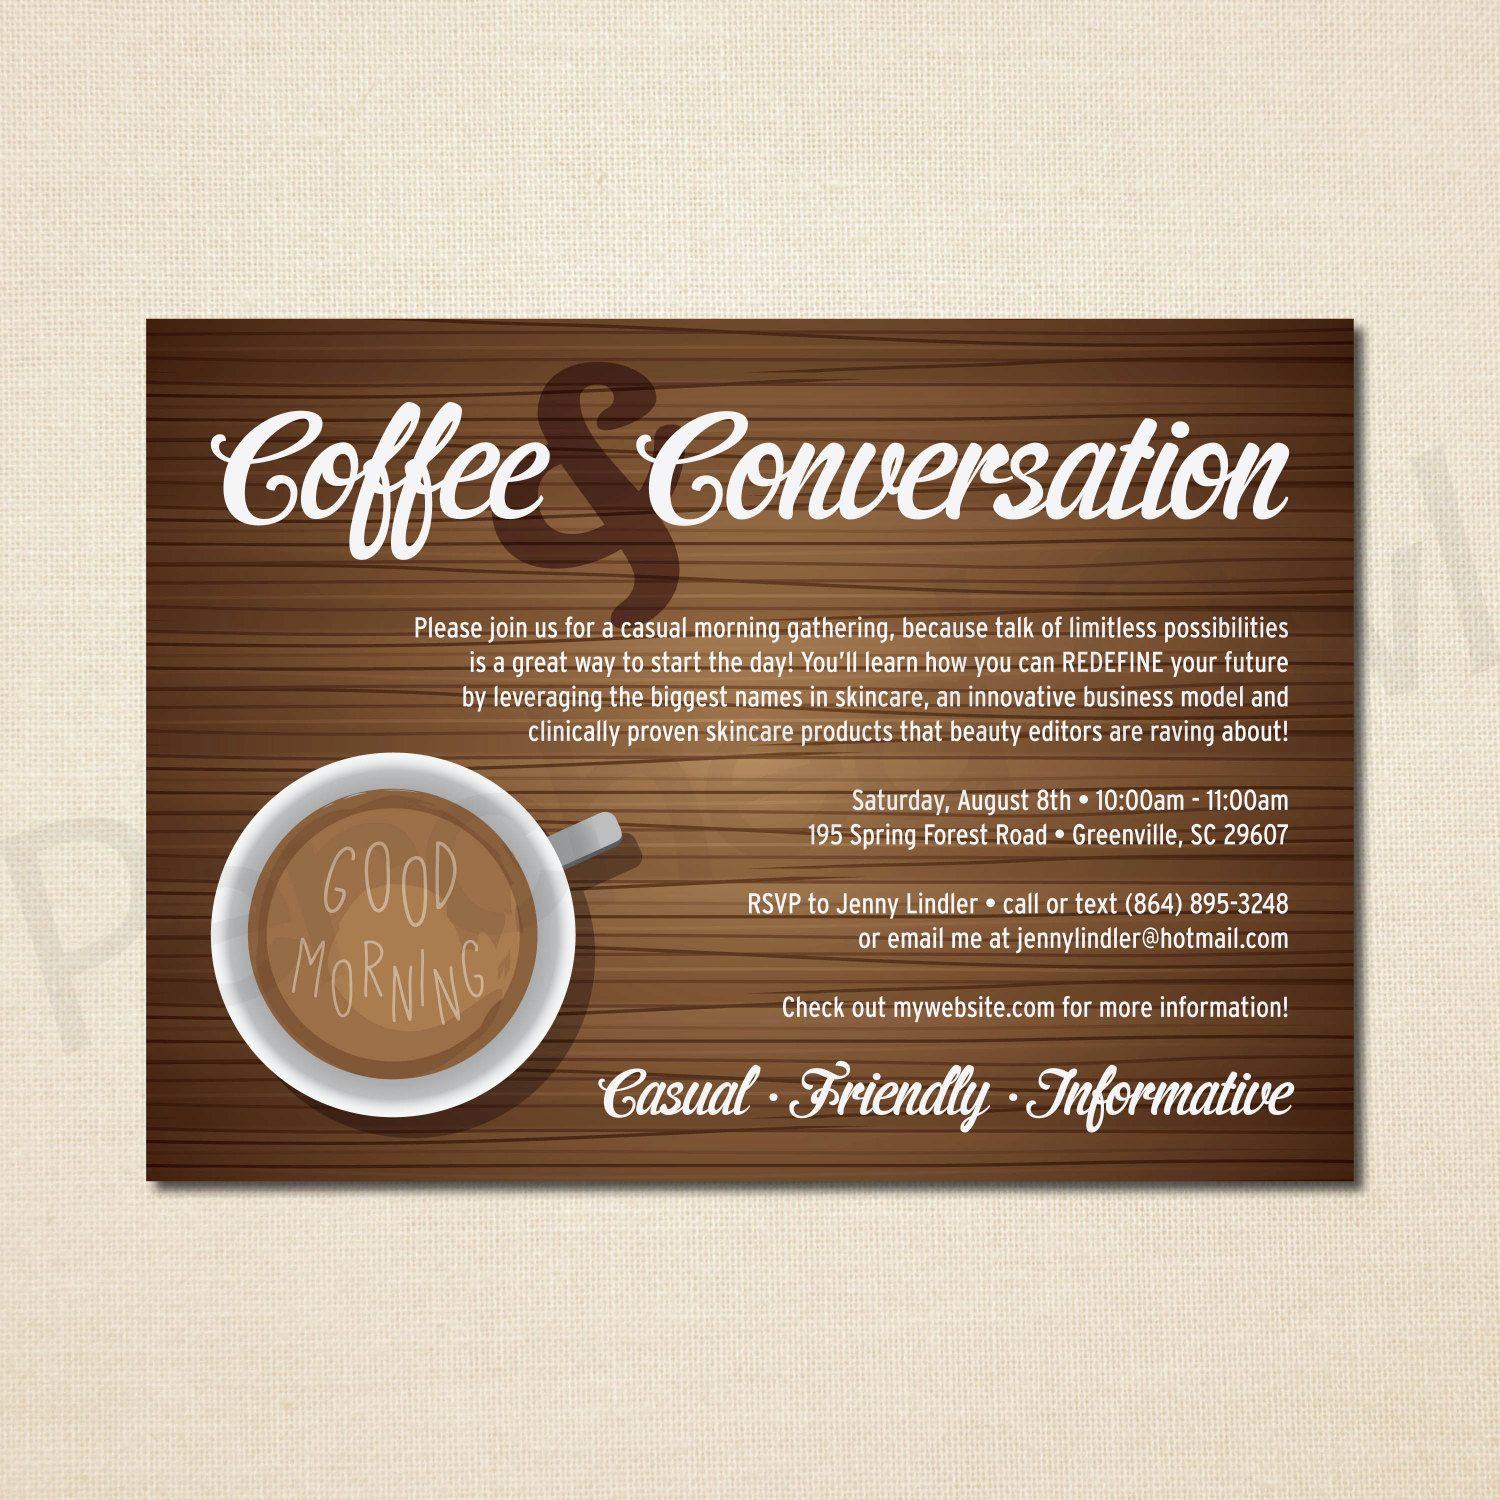 Coffee and Conversation Invitation - Direct Selling - Business ...